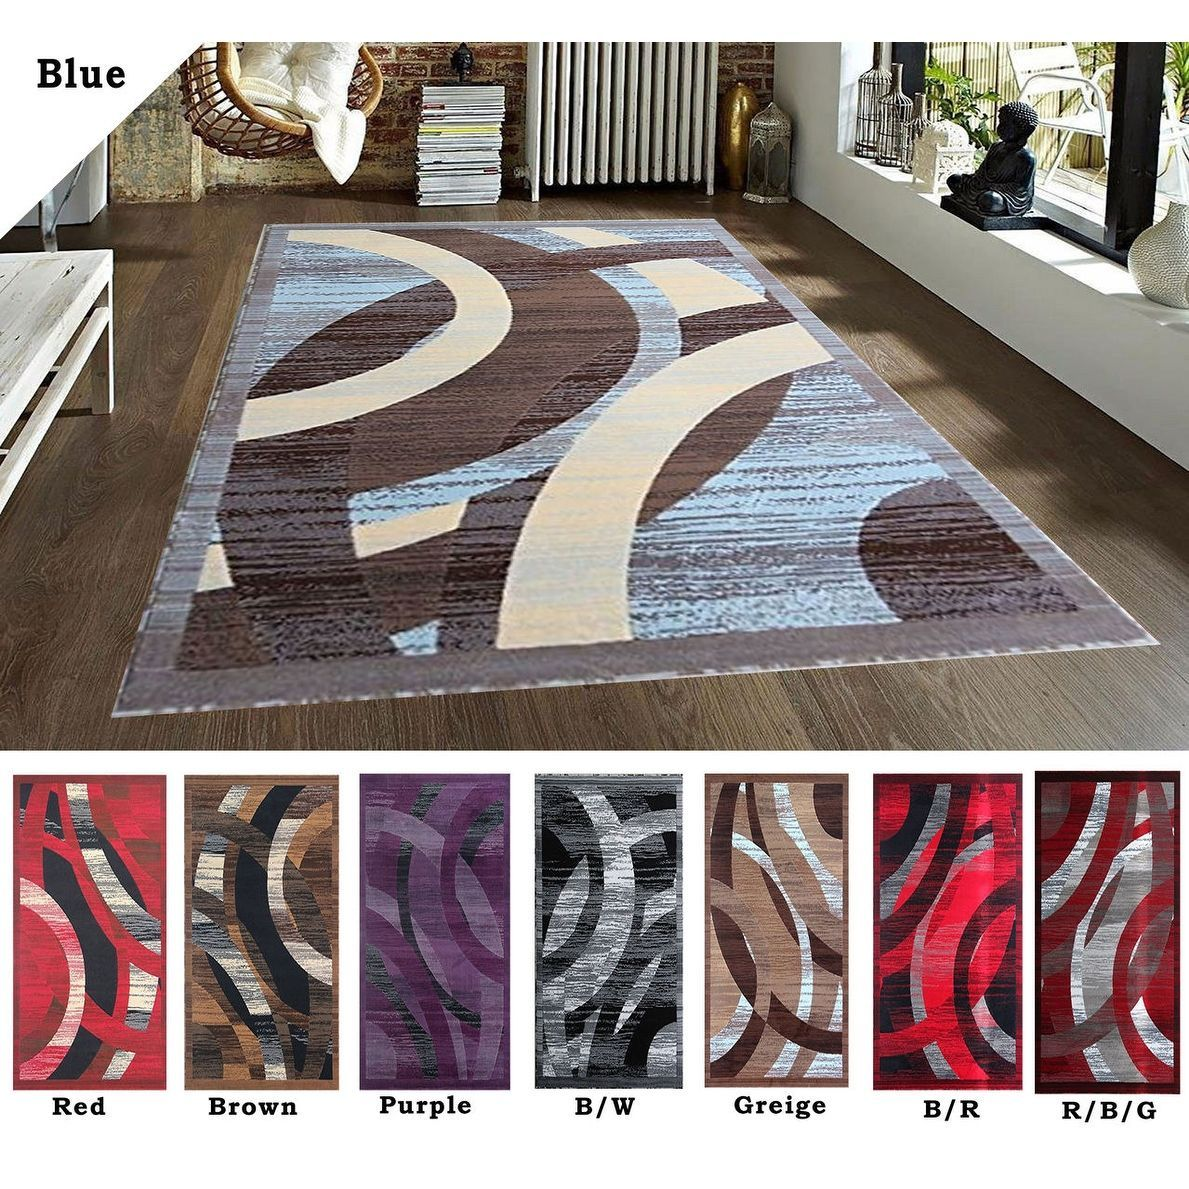 2x8 5x7 3 8x10 Rug Carpet Area Rug Blue Red Brown Purple Black White Greige Modern Contemporary Hand Carved Polyester